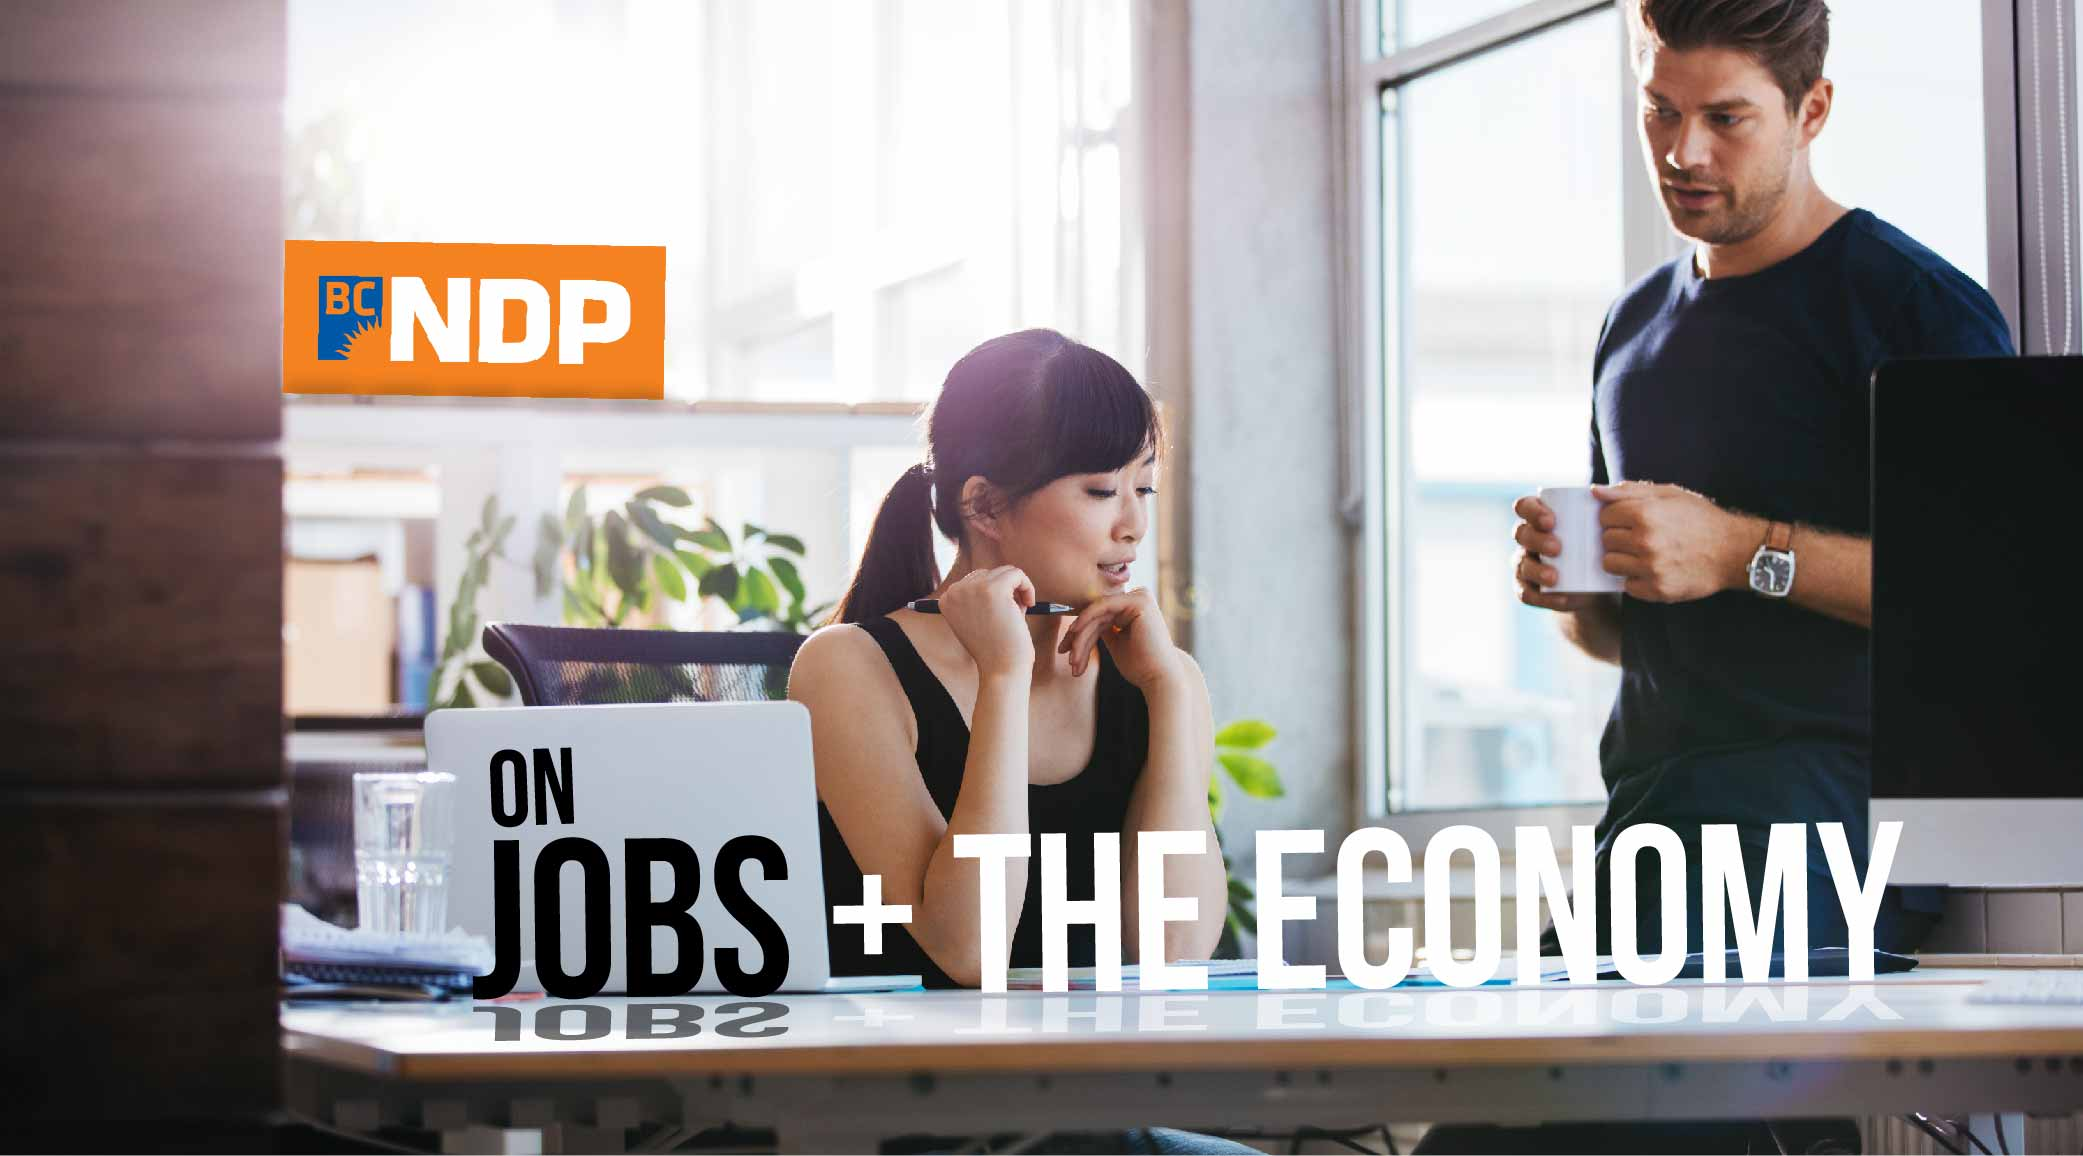 BC Election 2017: BC NDP and jobs and the economy in detail